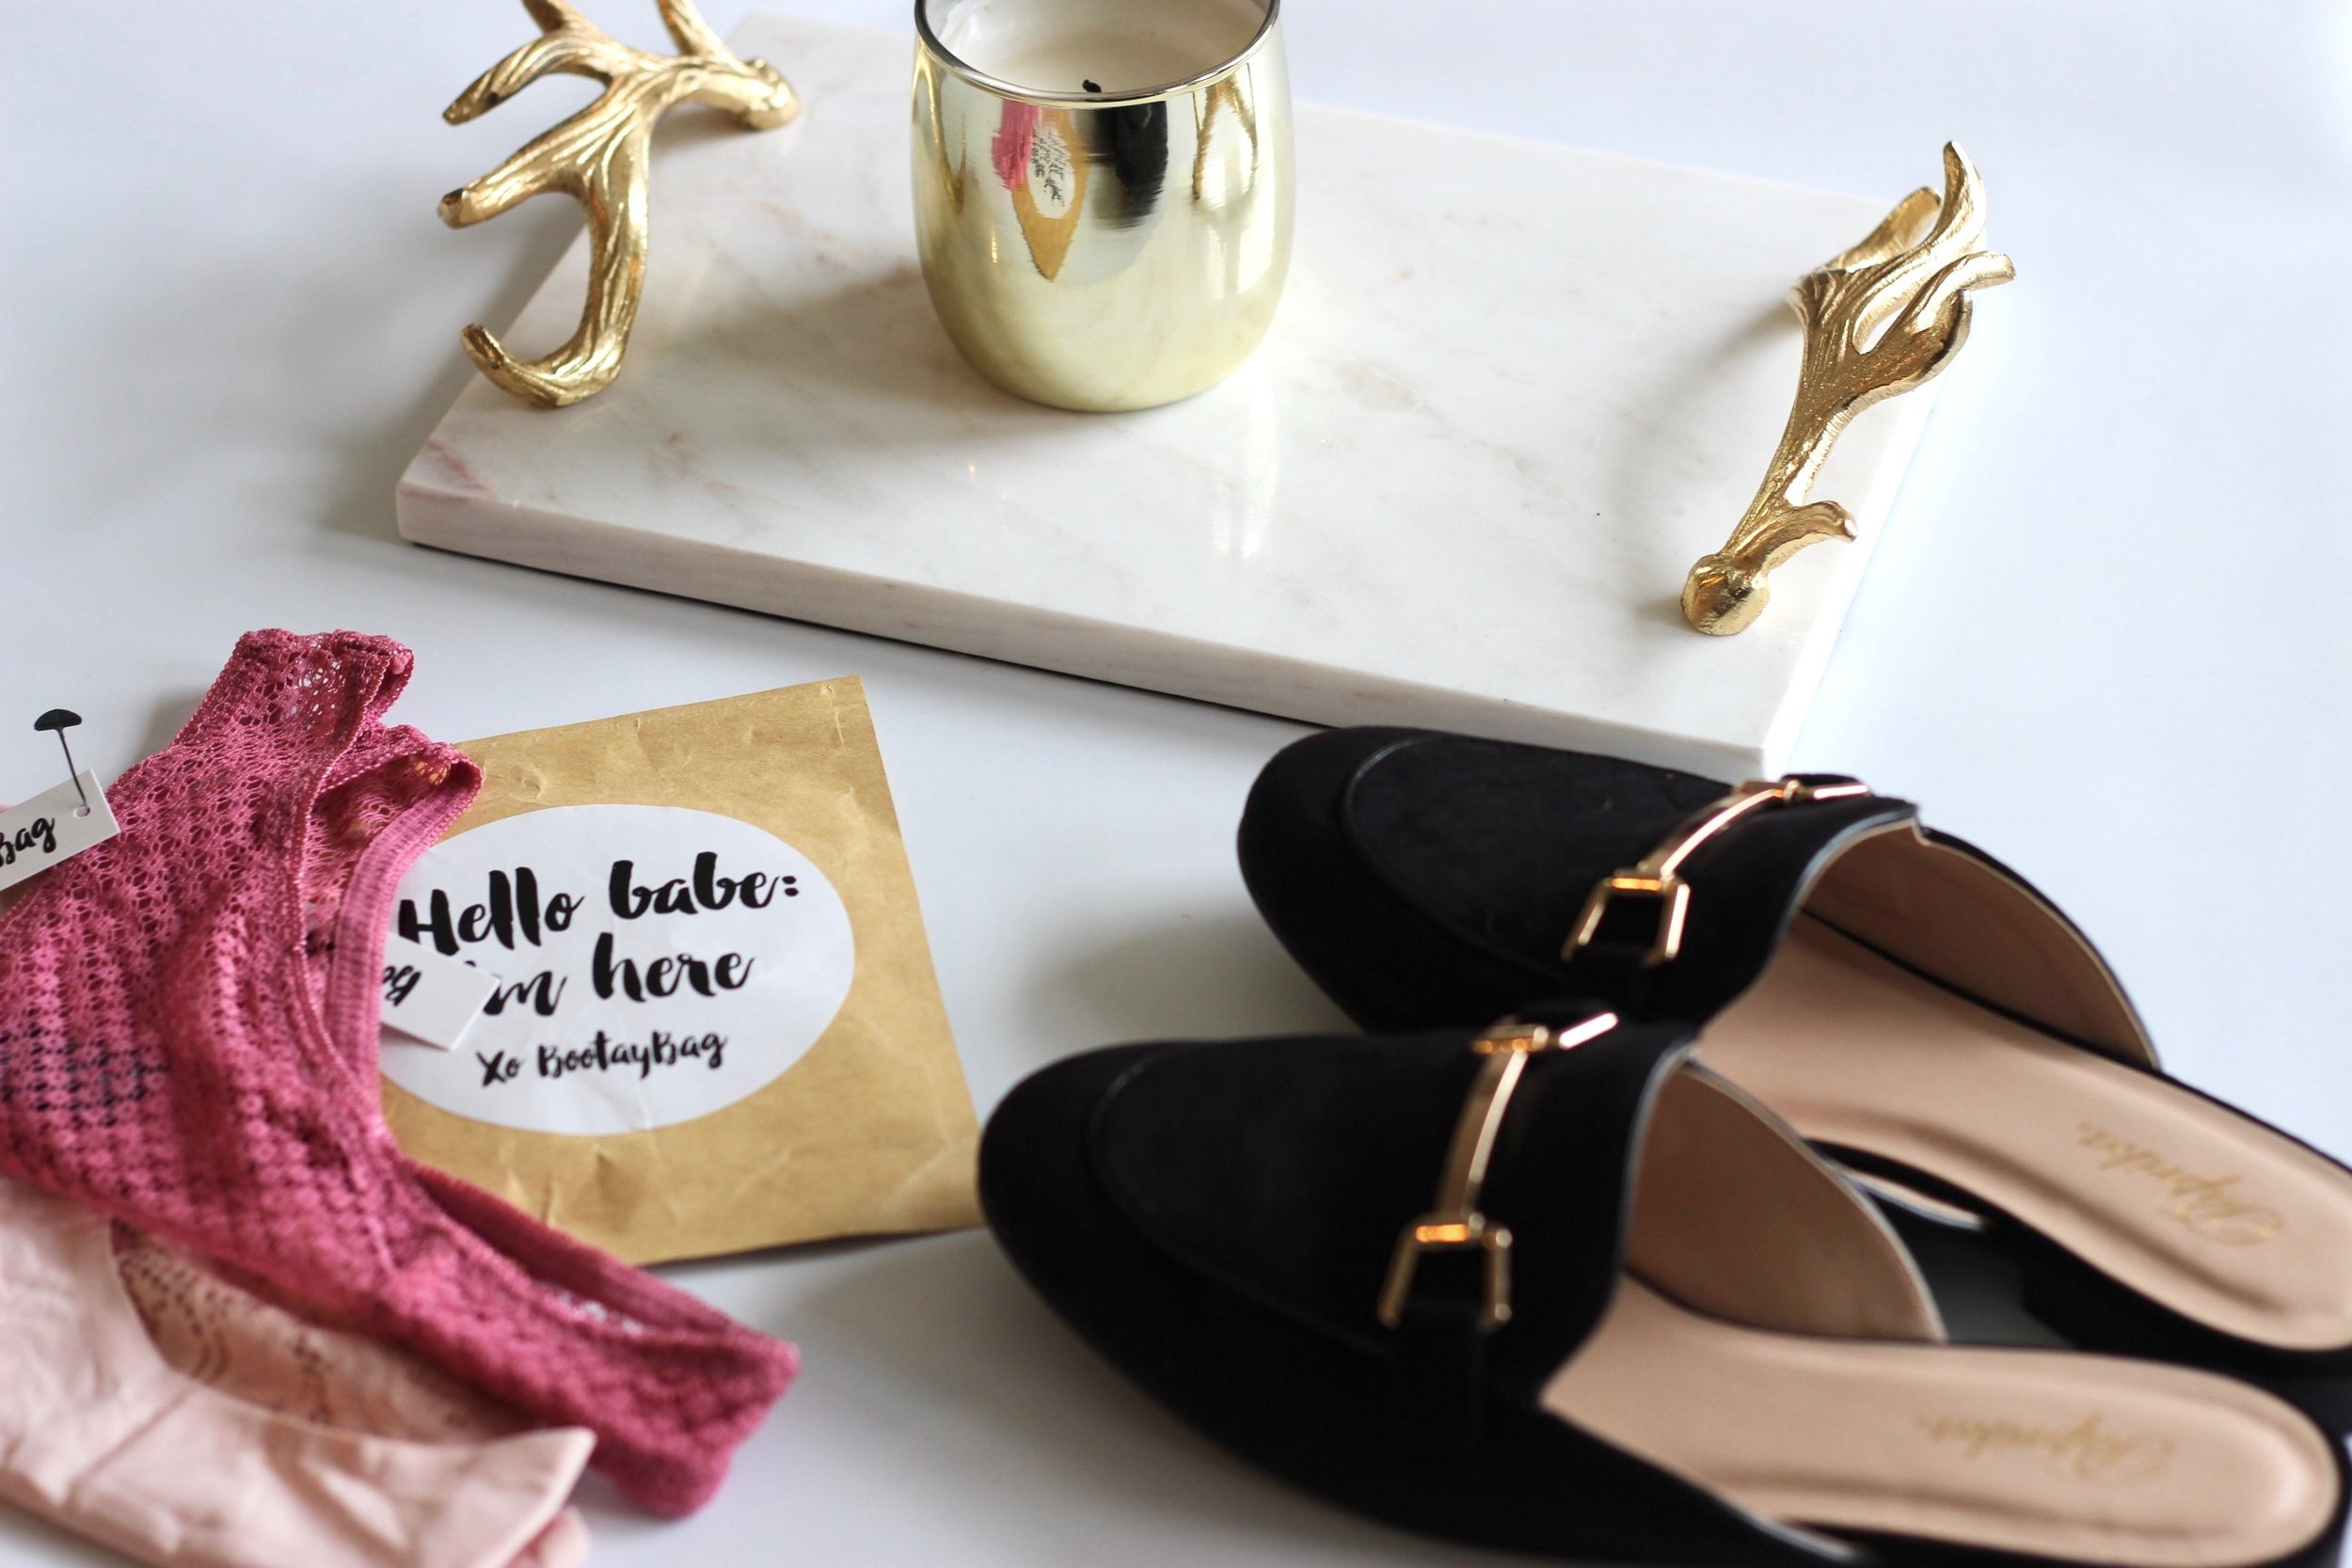 flatly-image-candle-gold-marble-underwear-loafers.jpg